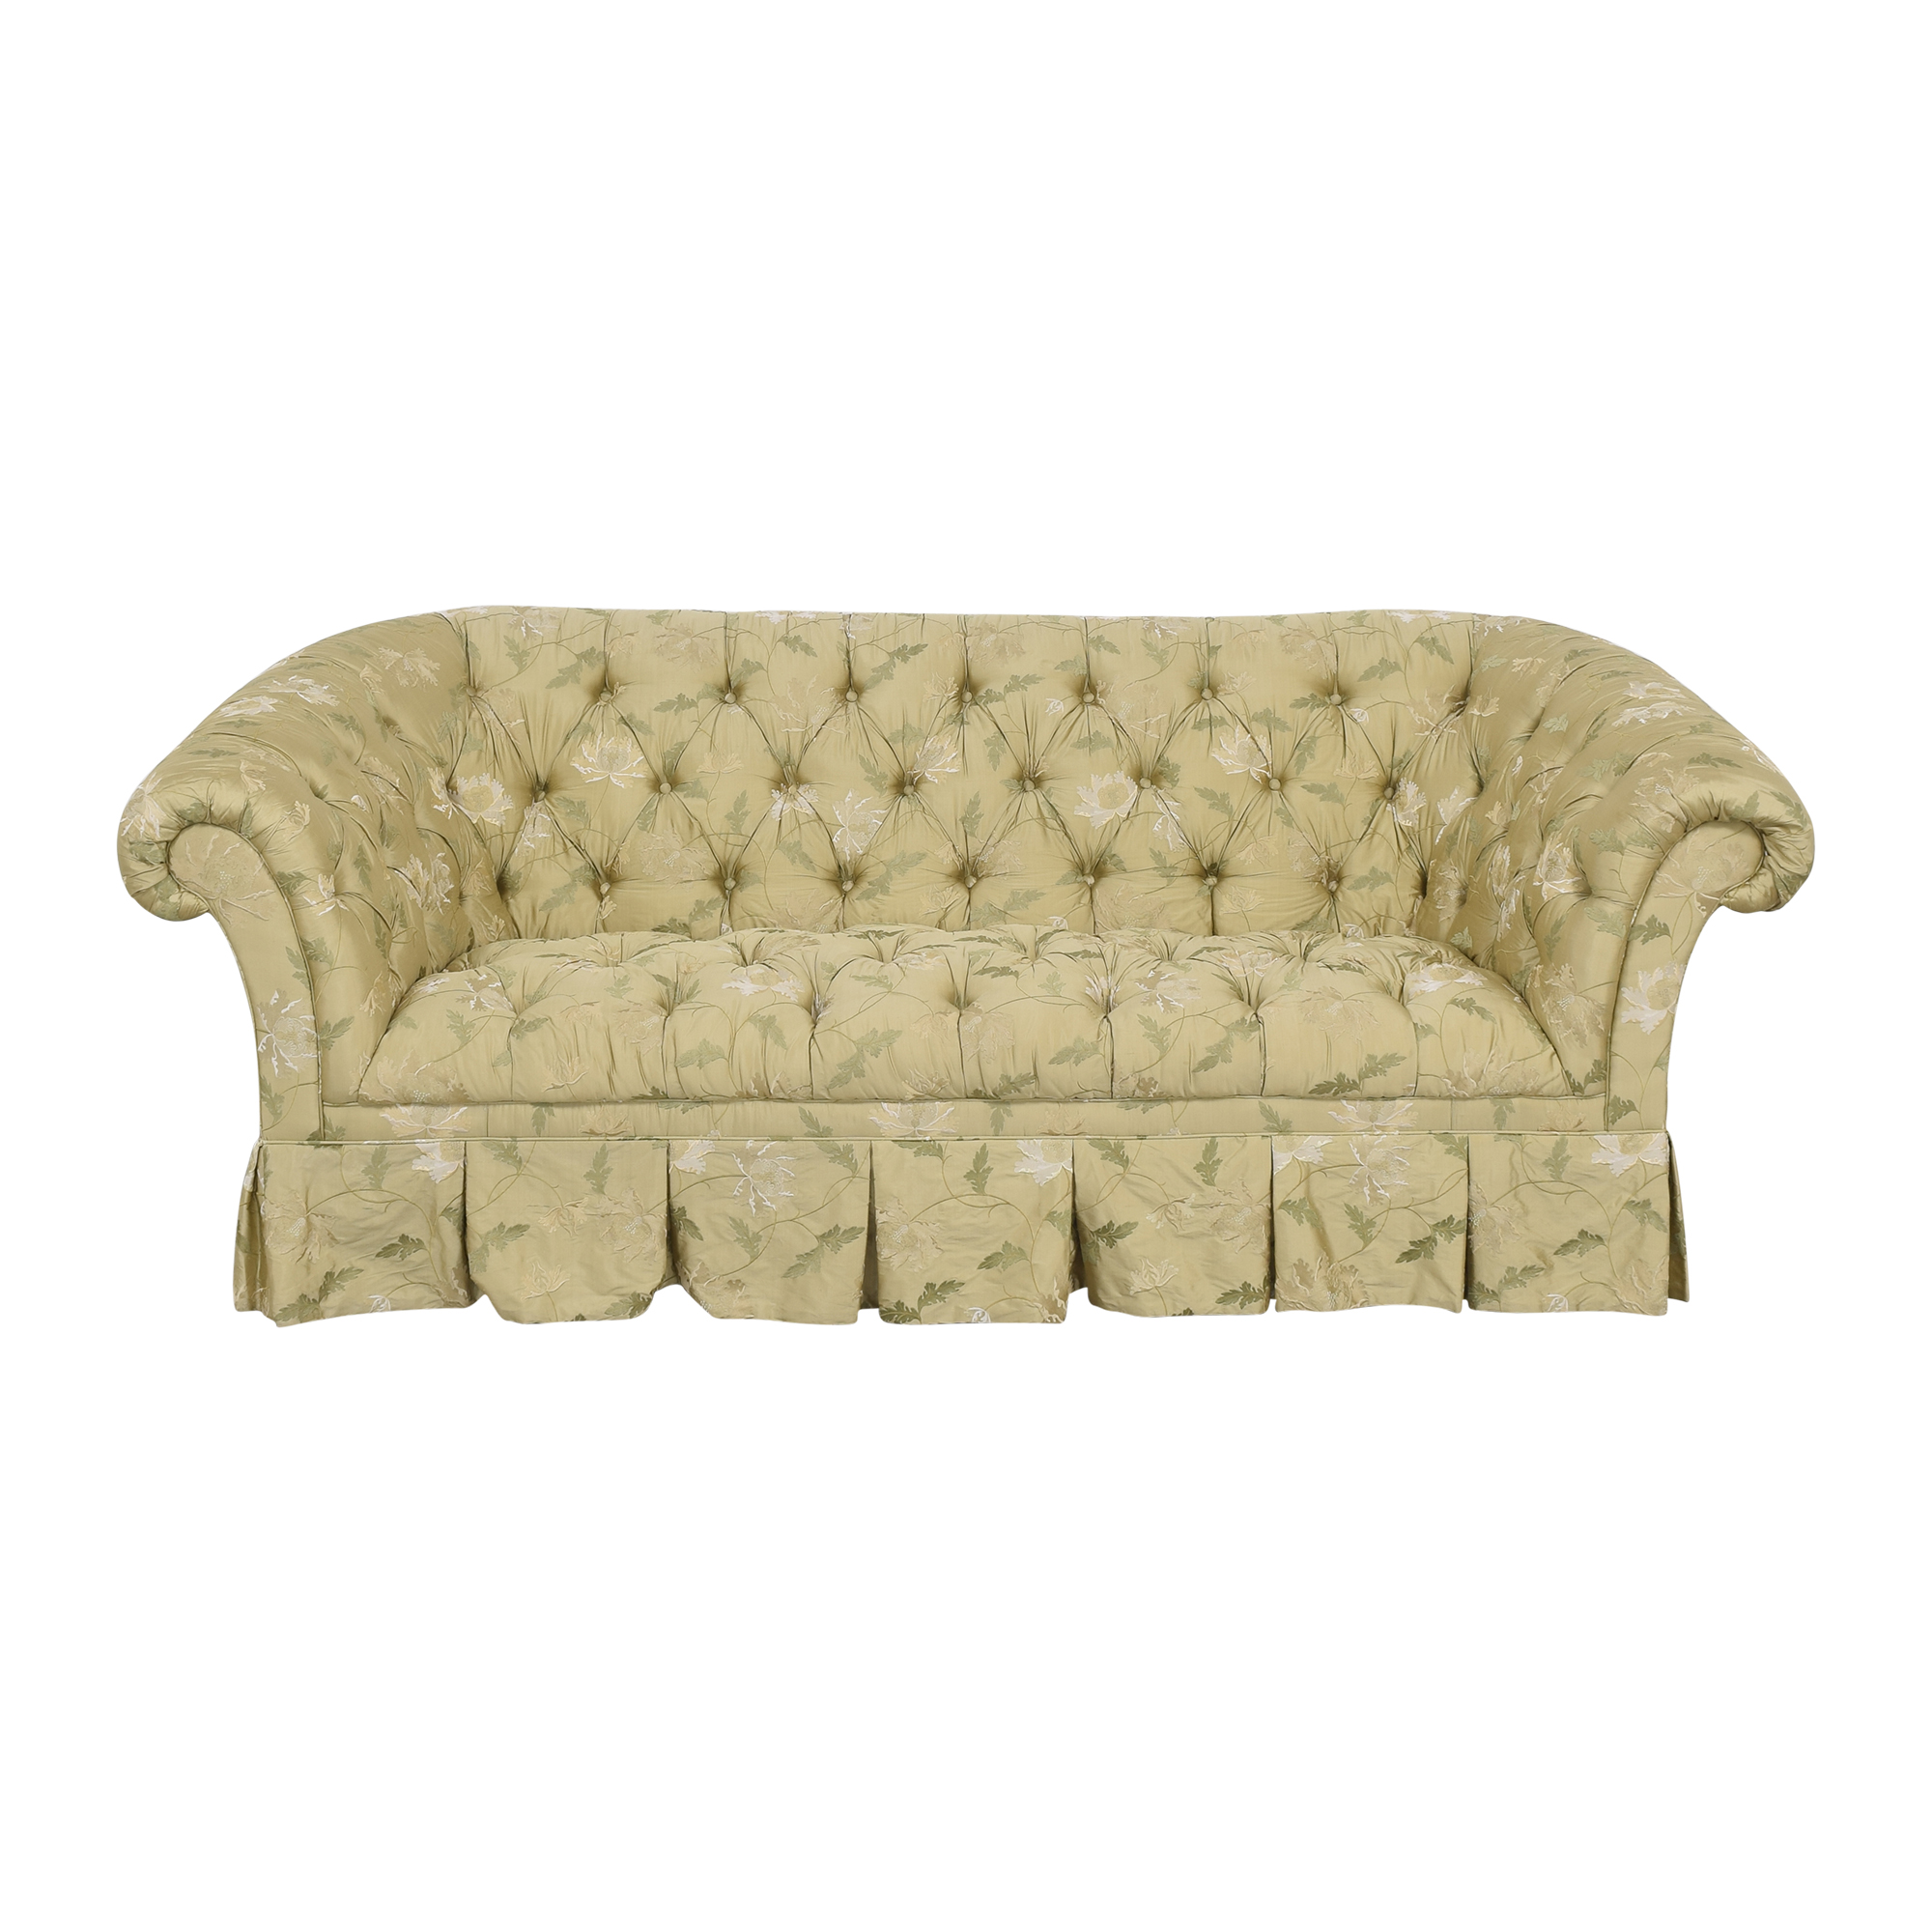 Lillian August Lillian August Chesterfield Sofa price